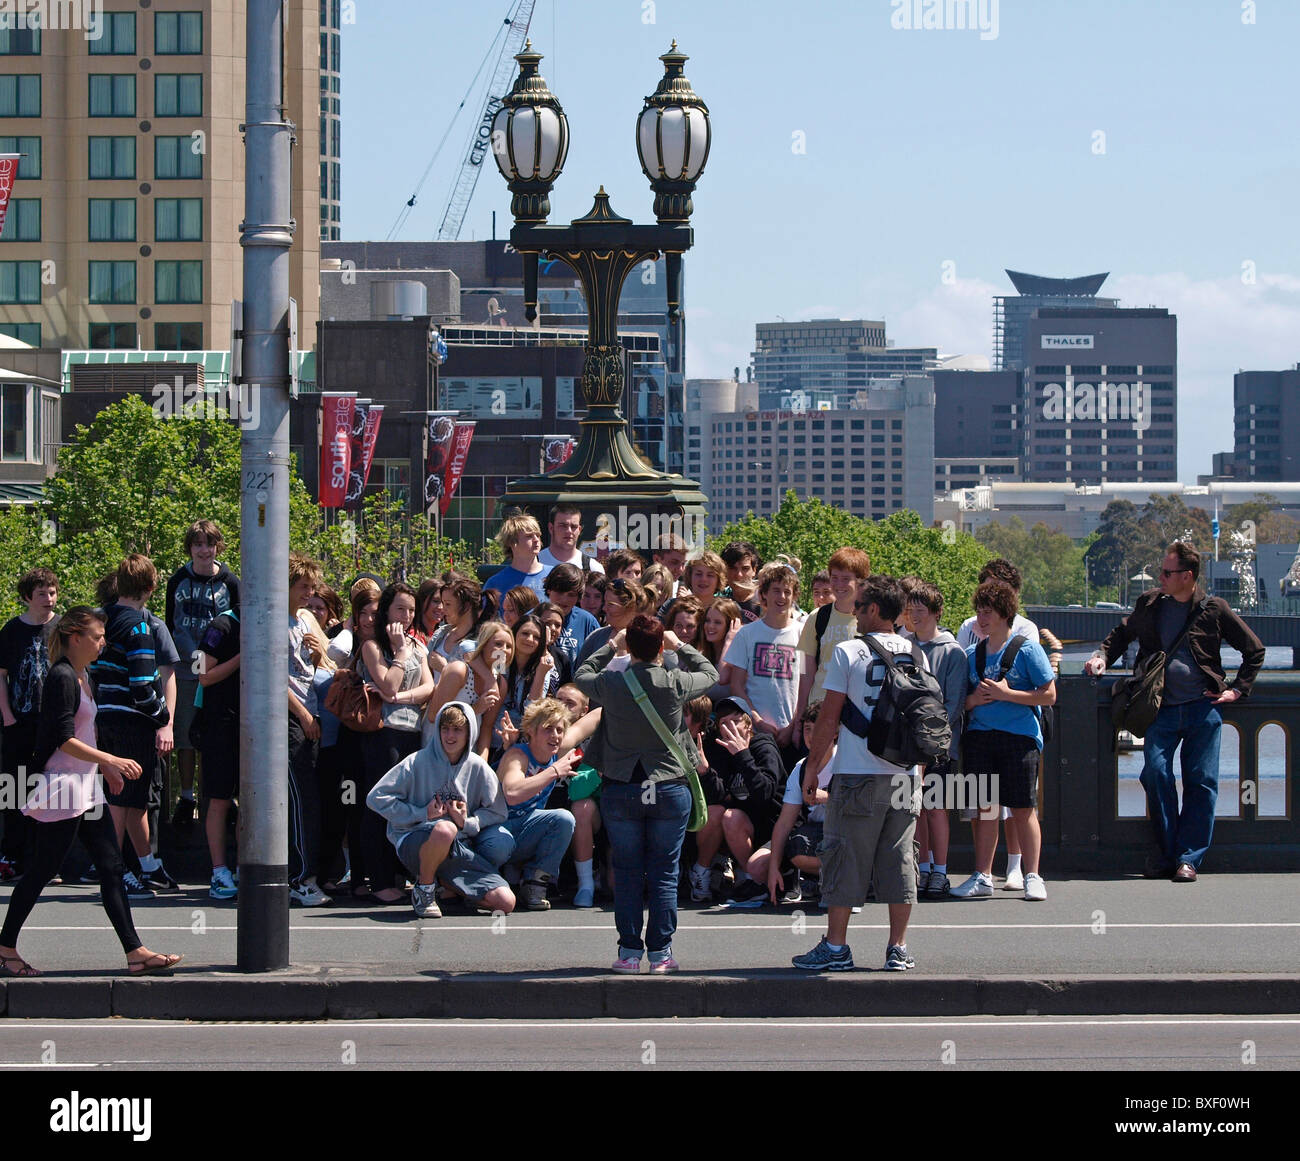 GROUP POSING FOR PHOTOGRAPH ON BRIDGE OVER RIVER YARRA MELBOURNE VICTORIA AUSTRALIA - Stock Image